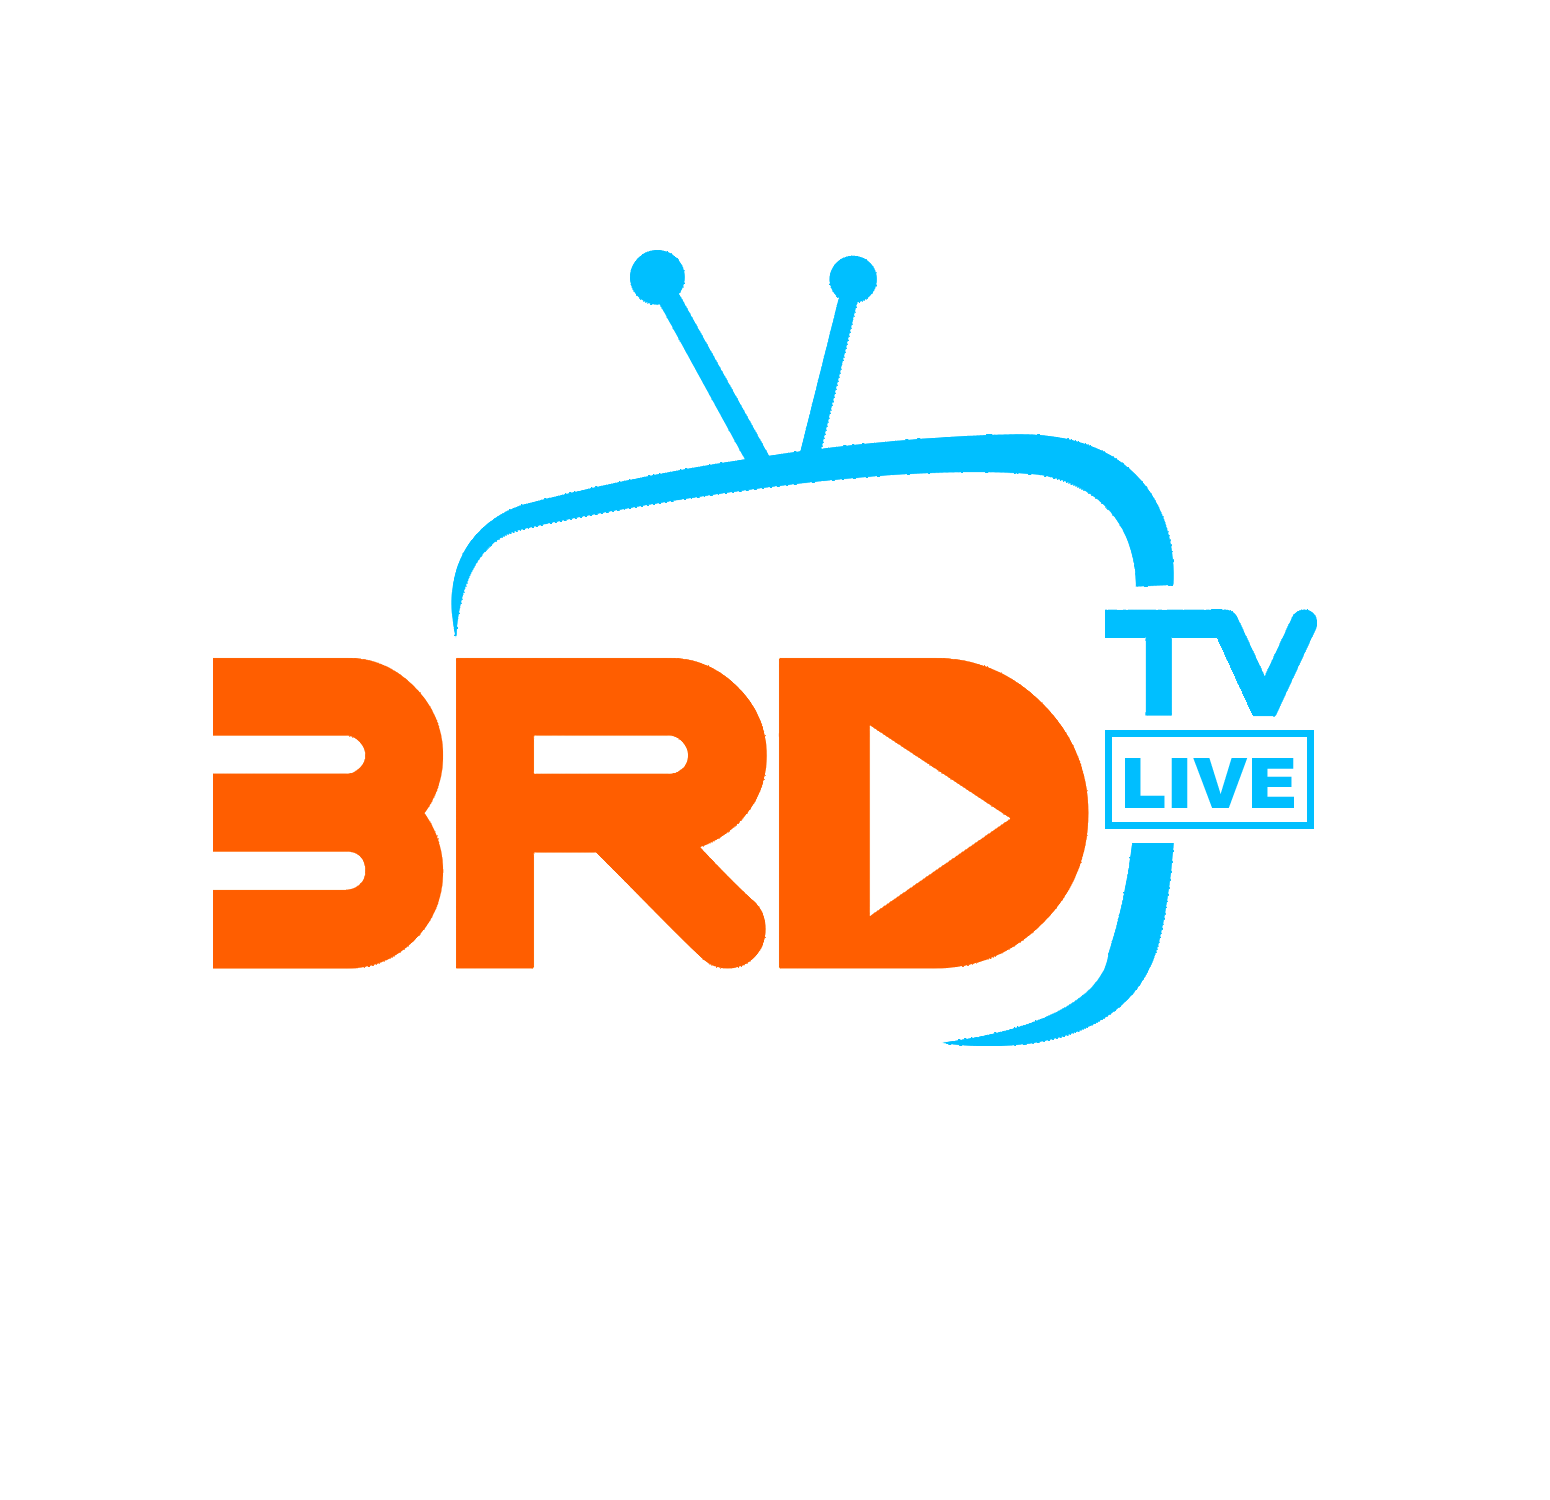 Television logo png. File rd tv wikimedia